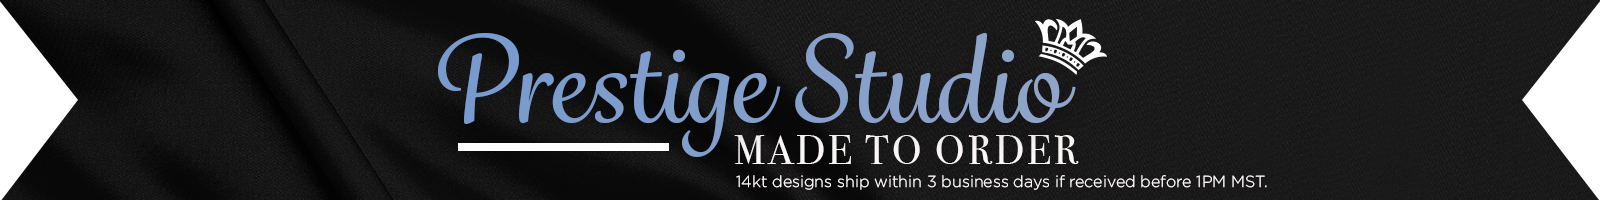 Prestige Studio Made to order Fine jewelry by Metalsmiths Sterling